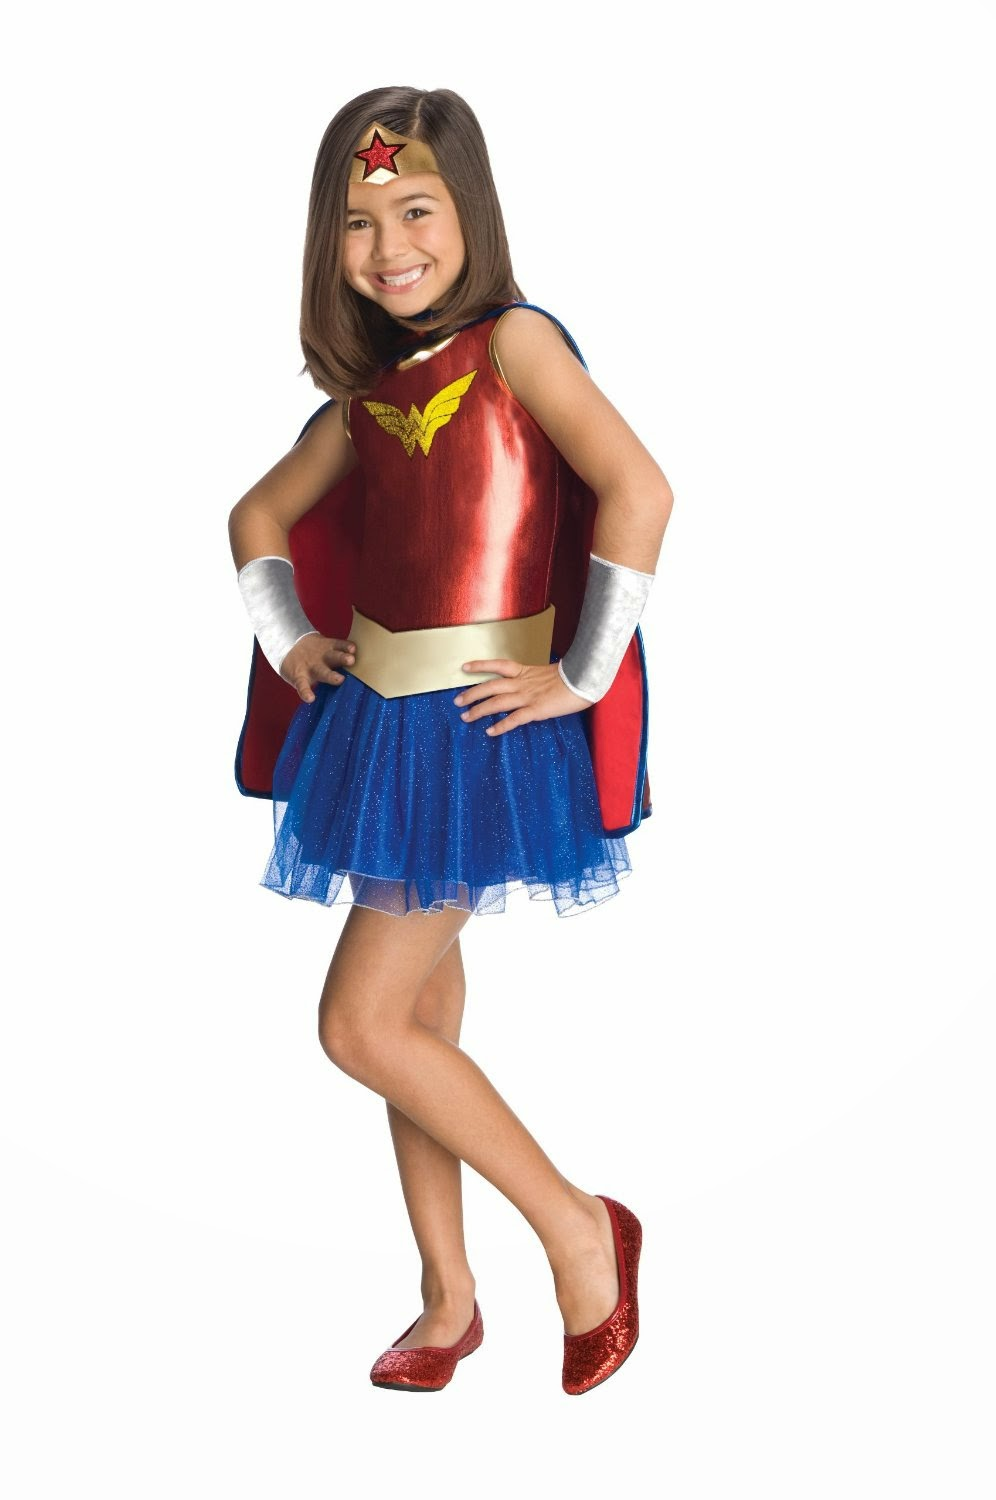 80s Fashion For Boys Costumes Cute Wonder Woman Costume for